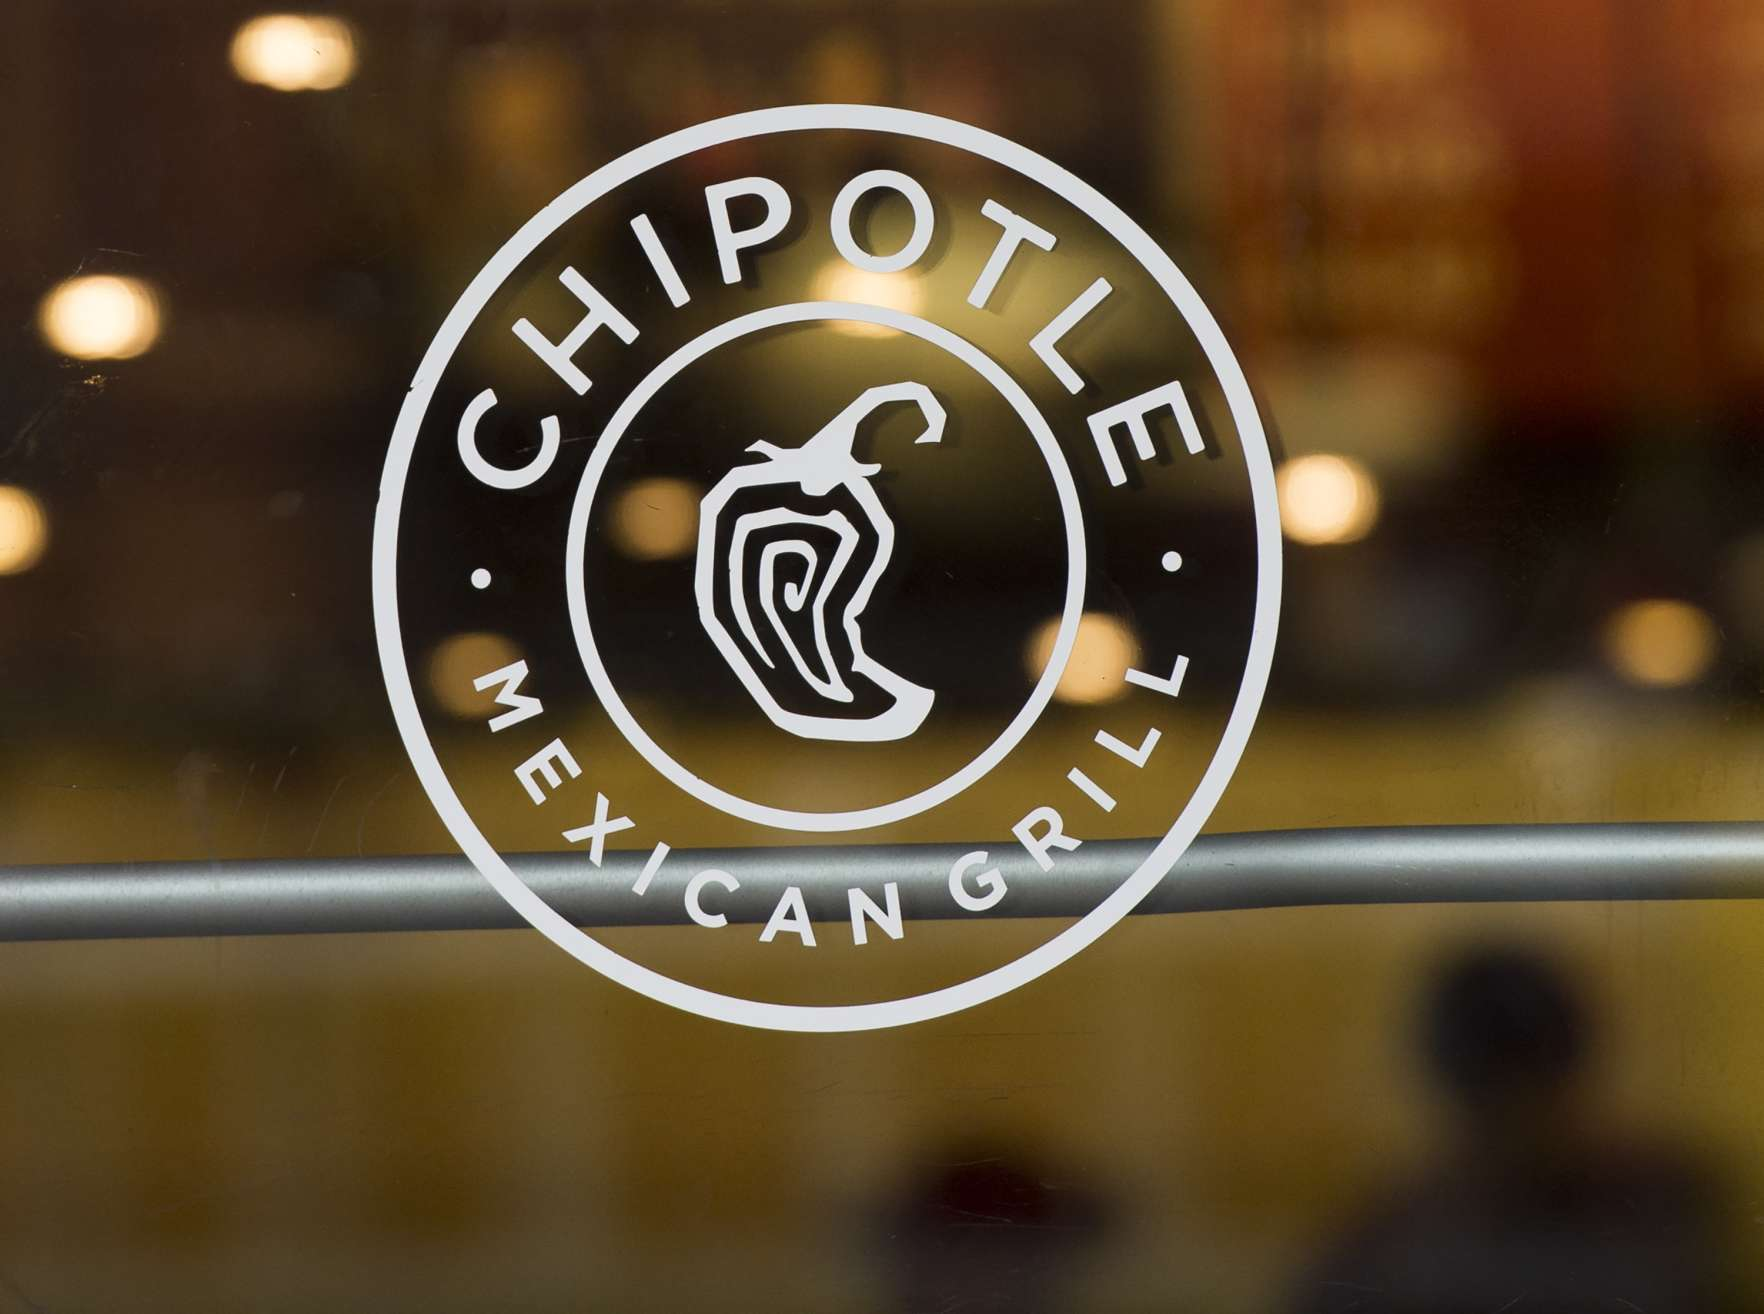 A Chipotle Mexican Grill restaurant